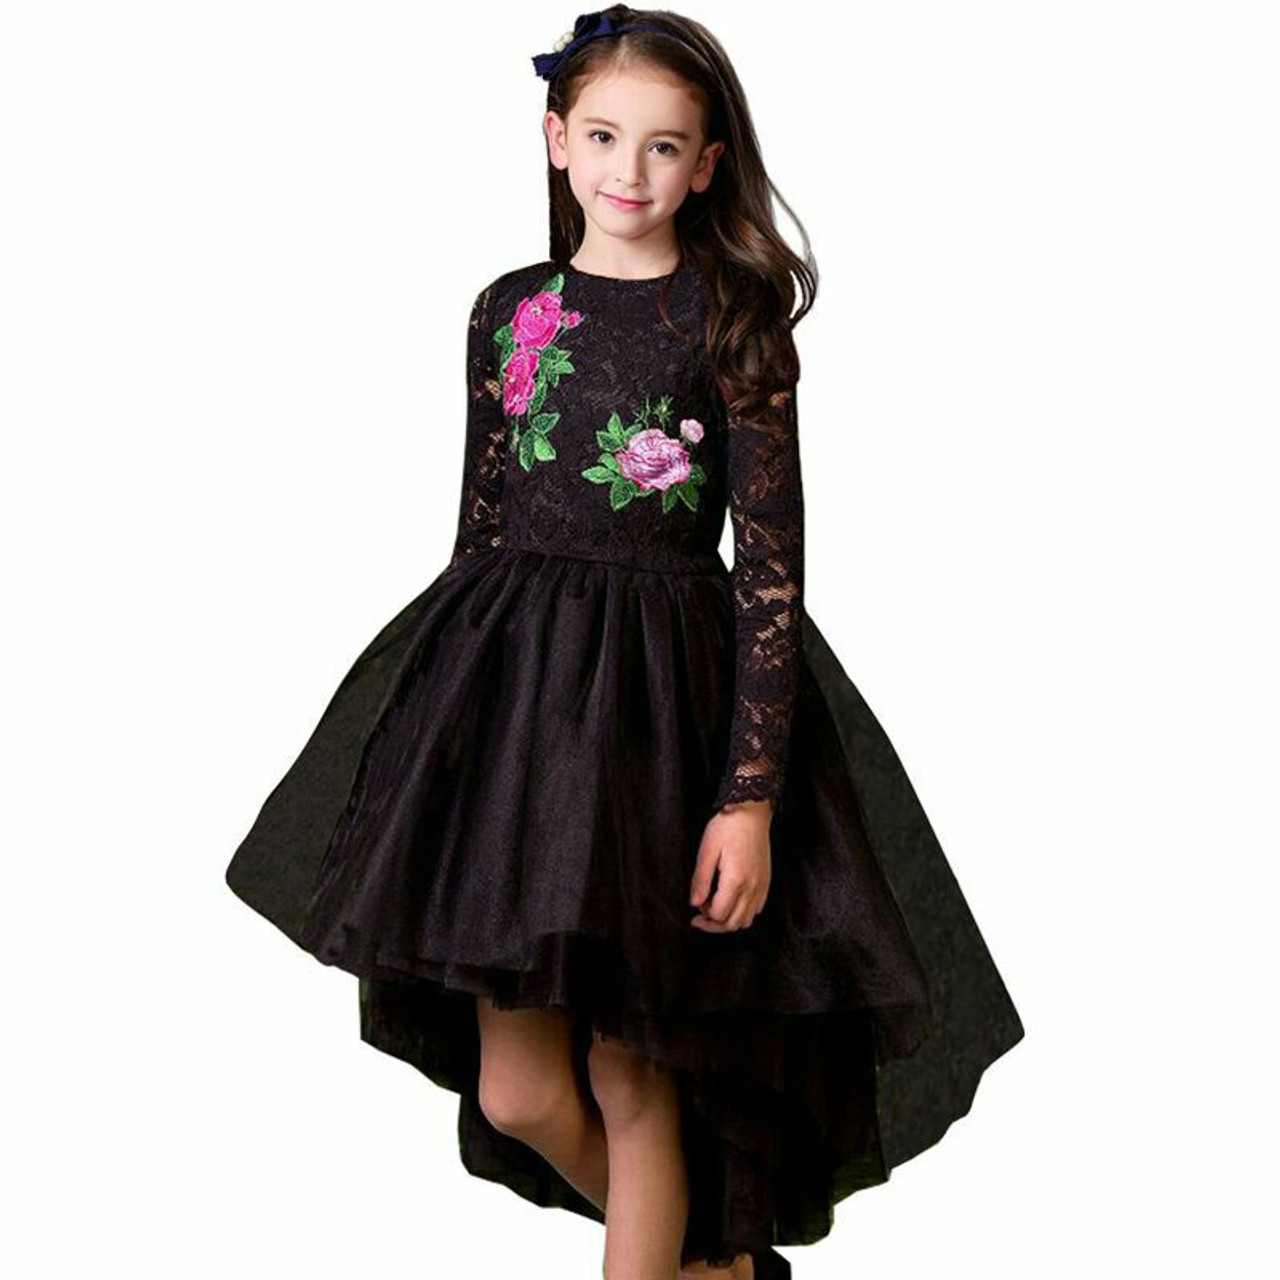 f457ab7e05264 Girls Party Dress Princess Costume 2017 Brand Kids Dresses for Girls  Clothes Flower Embroidery Children Black Lace Dress Vestido